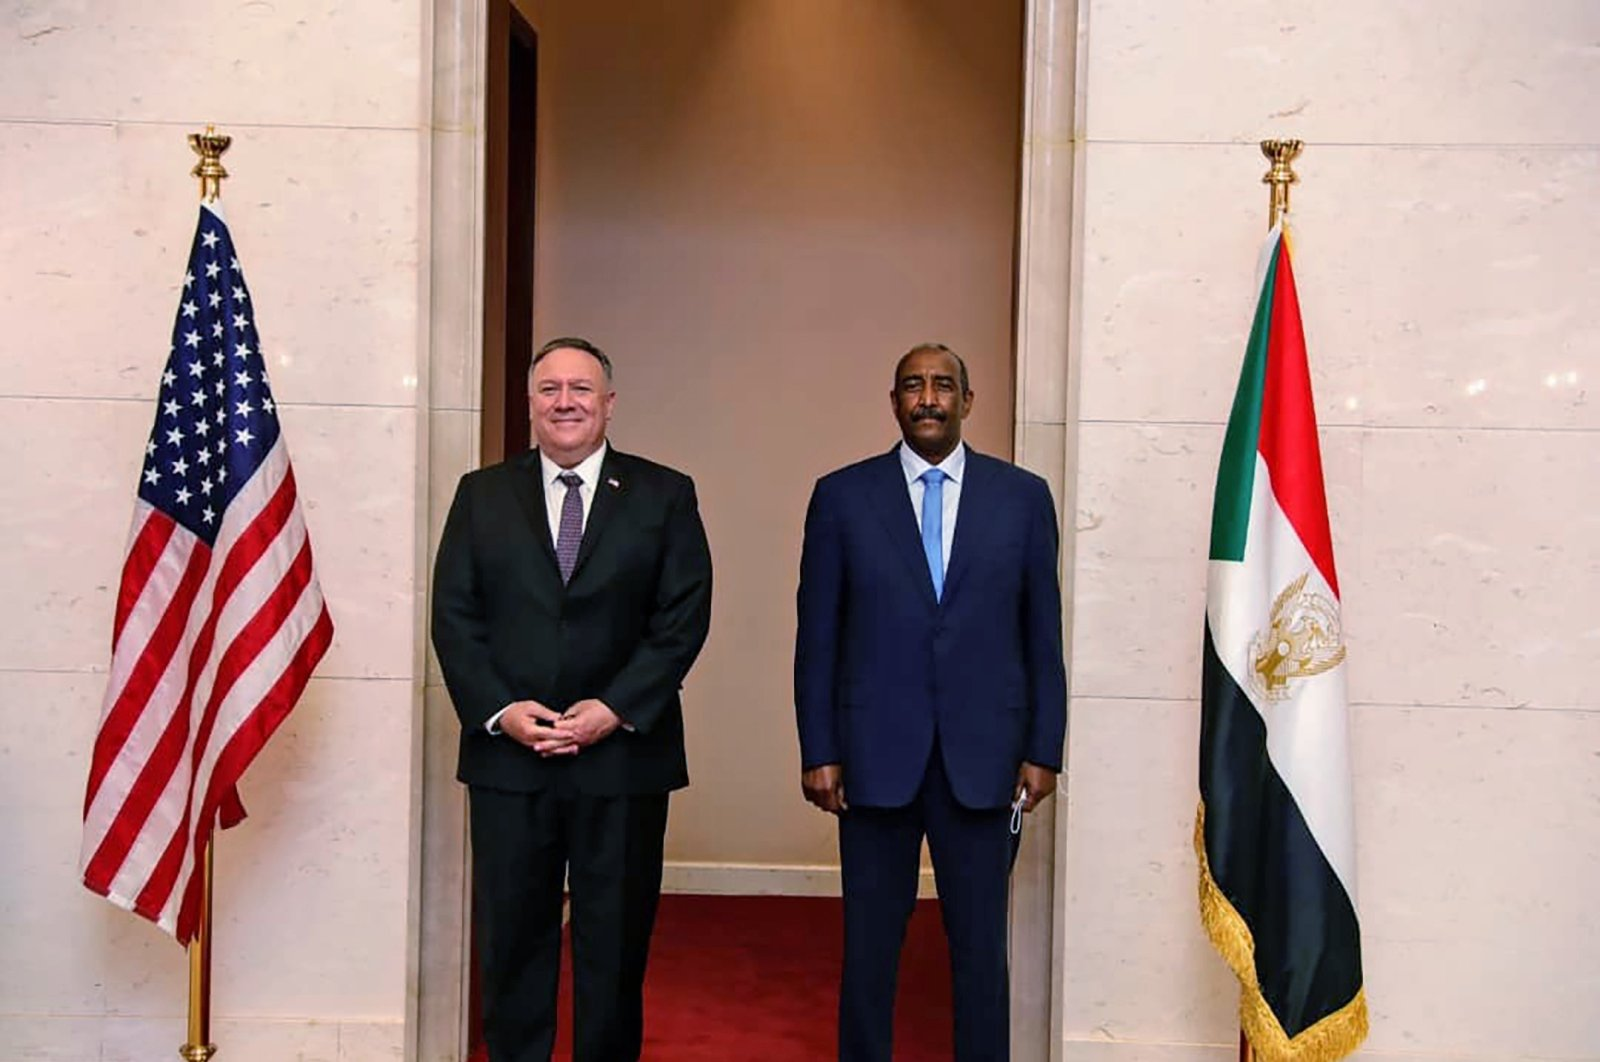 U.S. Secretary of State Mike Pompeo stands with Sudanese Gen. Abdel Fattah Burhan, the head of the ruling sovereign council, Khartoum, Aug. 25, 2020. (AP Photo)